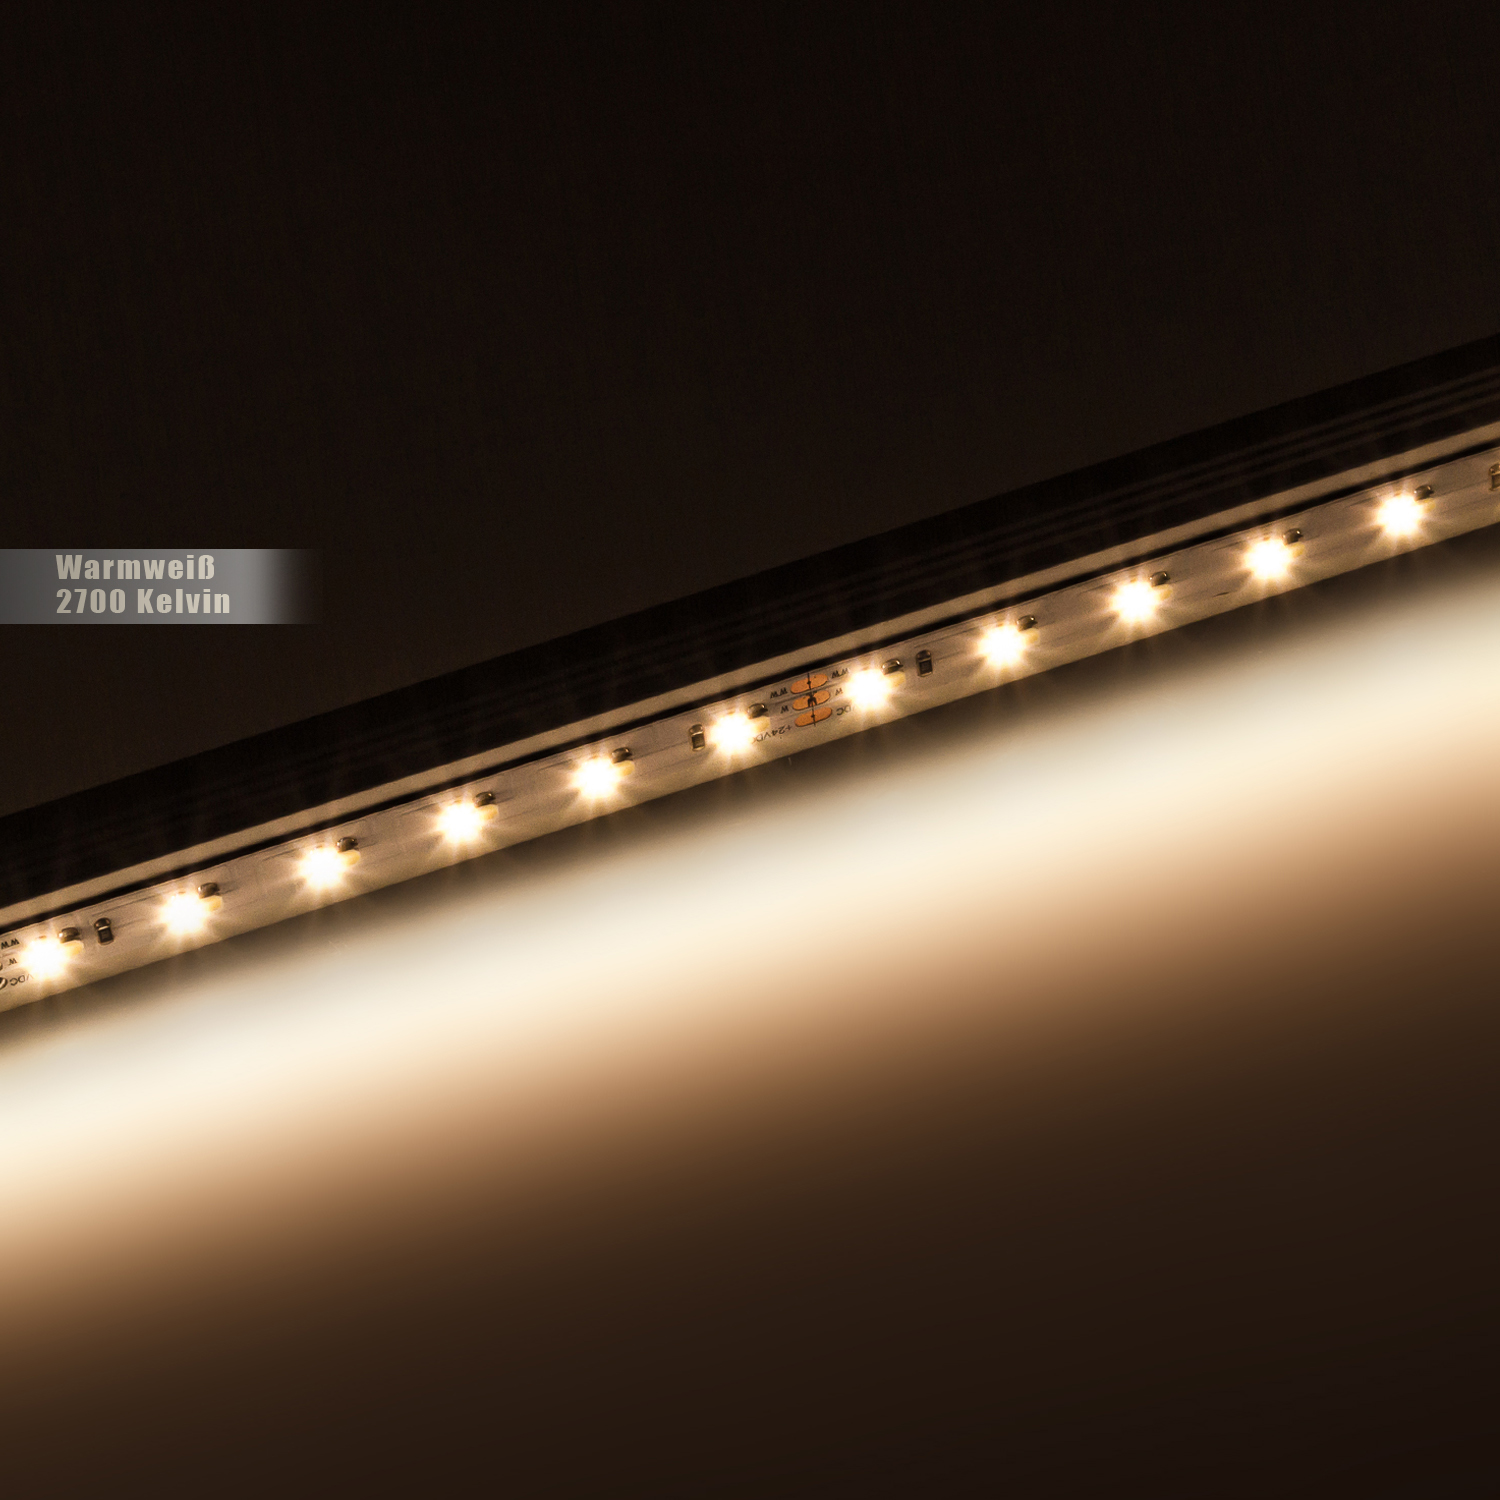 led band 1 chip 3528 warmwei 180 led m 14 4w m 24vdc. Black Bedroom Furniture Sets. Home Design Ideas